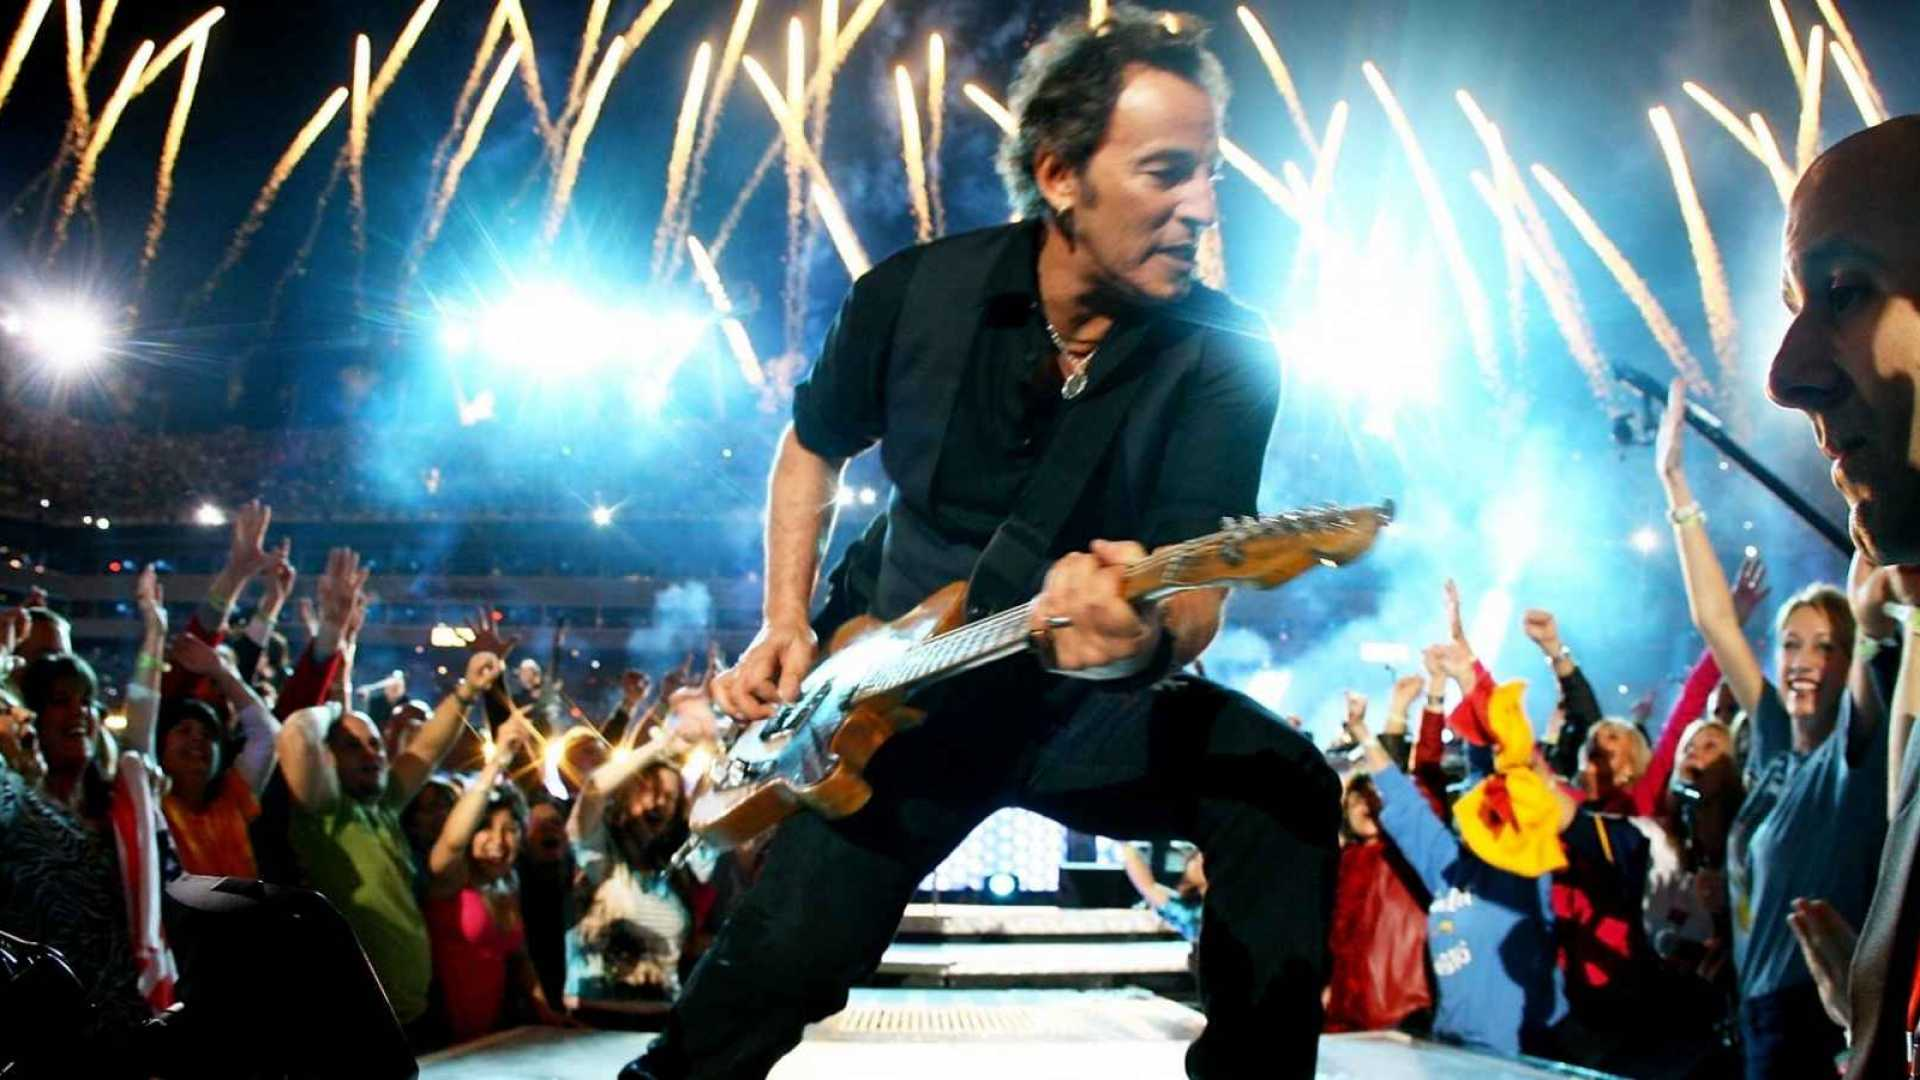 3 Lessons in Leadership from Bruce Springsteen's Legendary Journey as the Boss